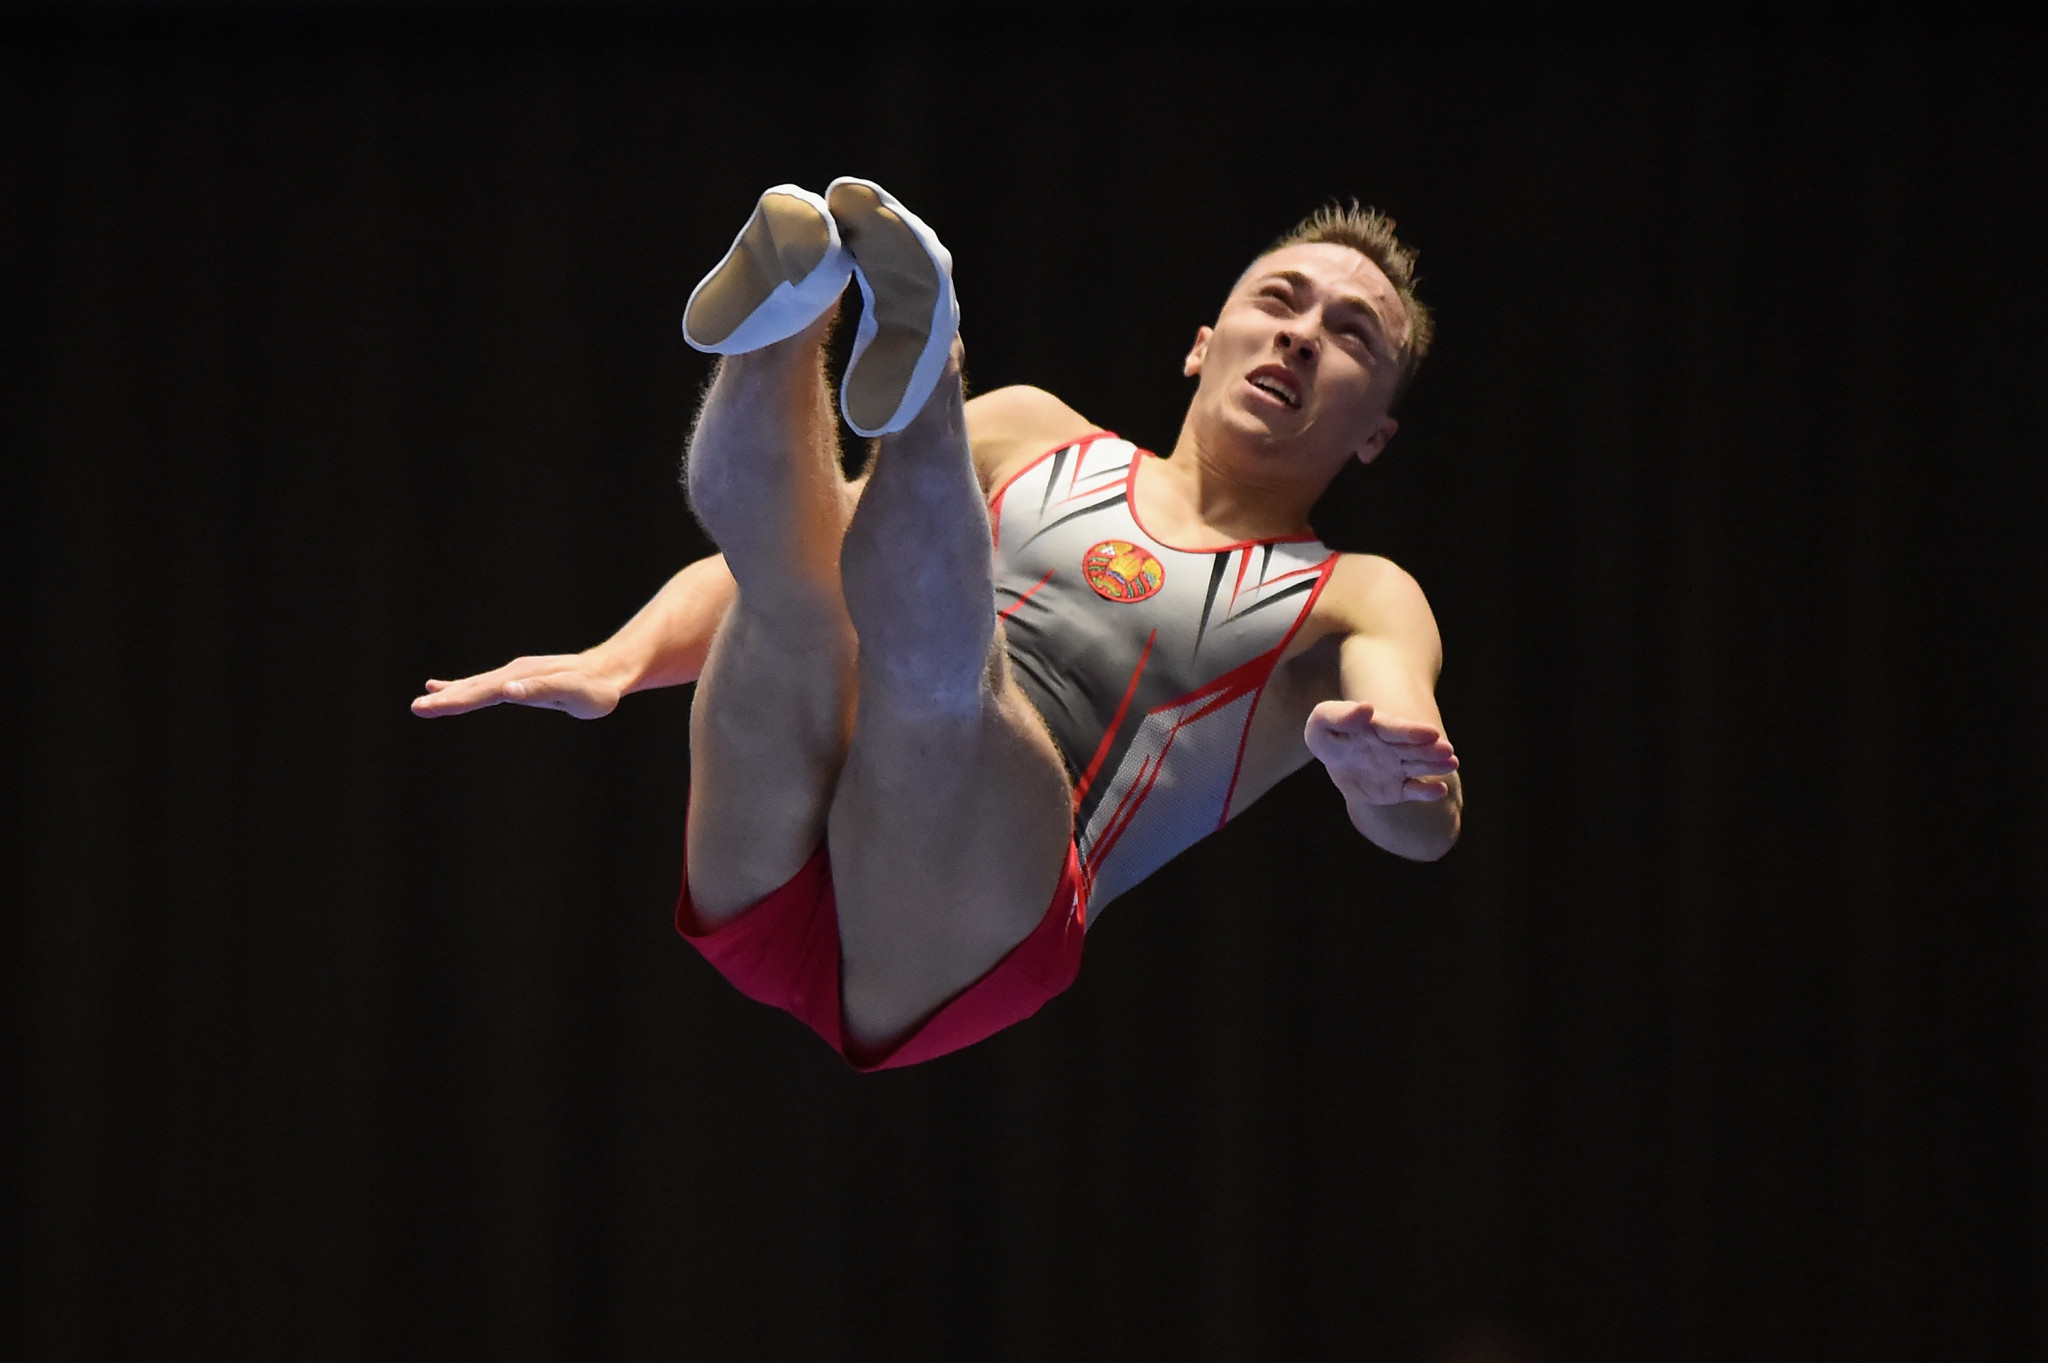 Olympic champion Hancharou looks to delight home crowd at FIG Trampoline World Cup